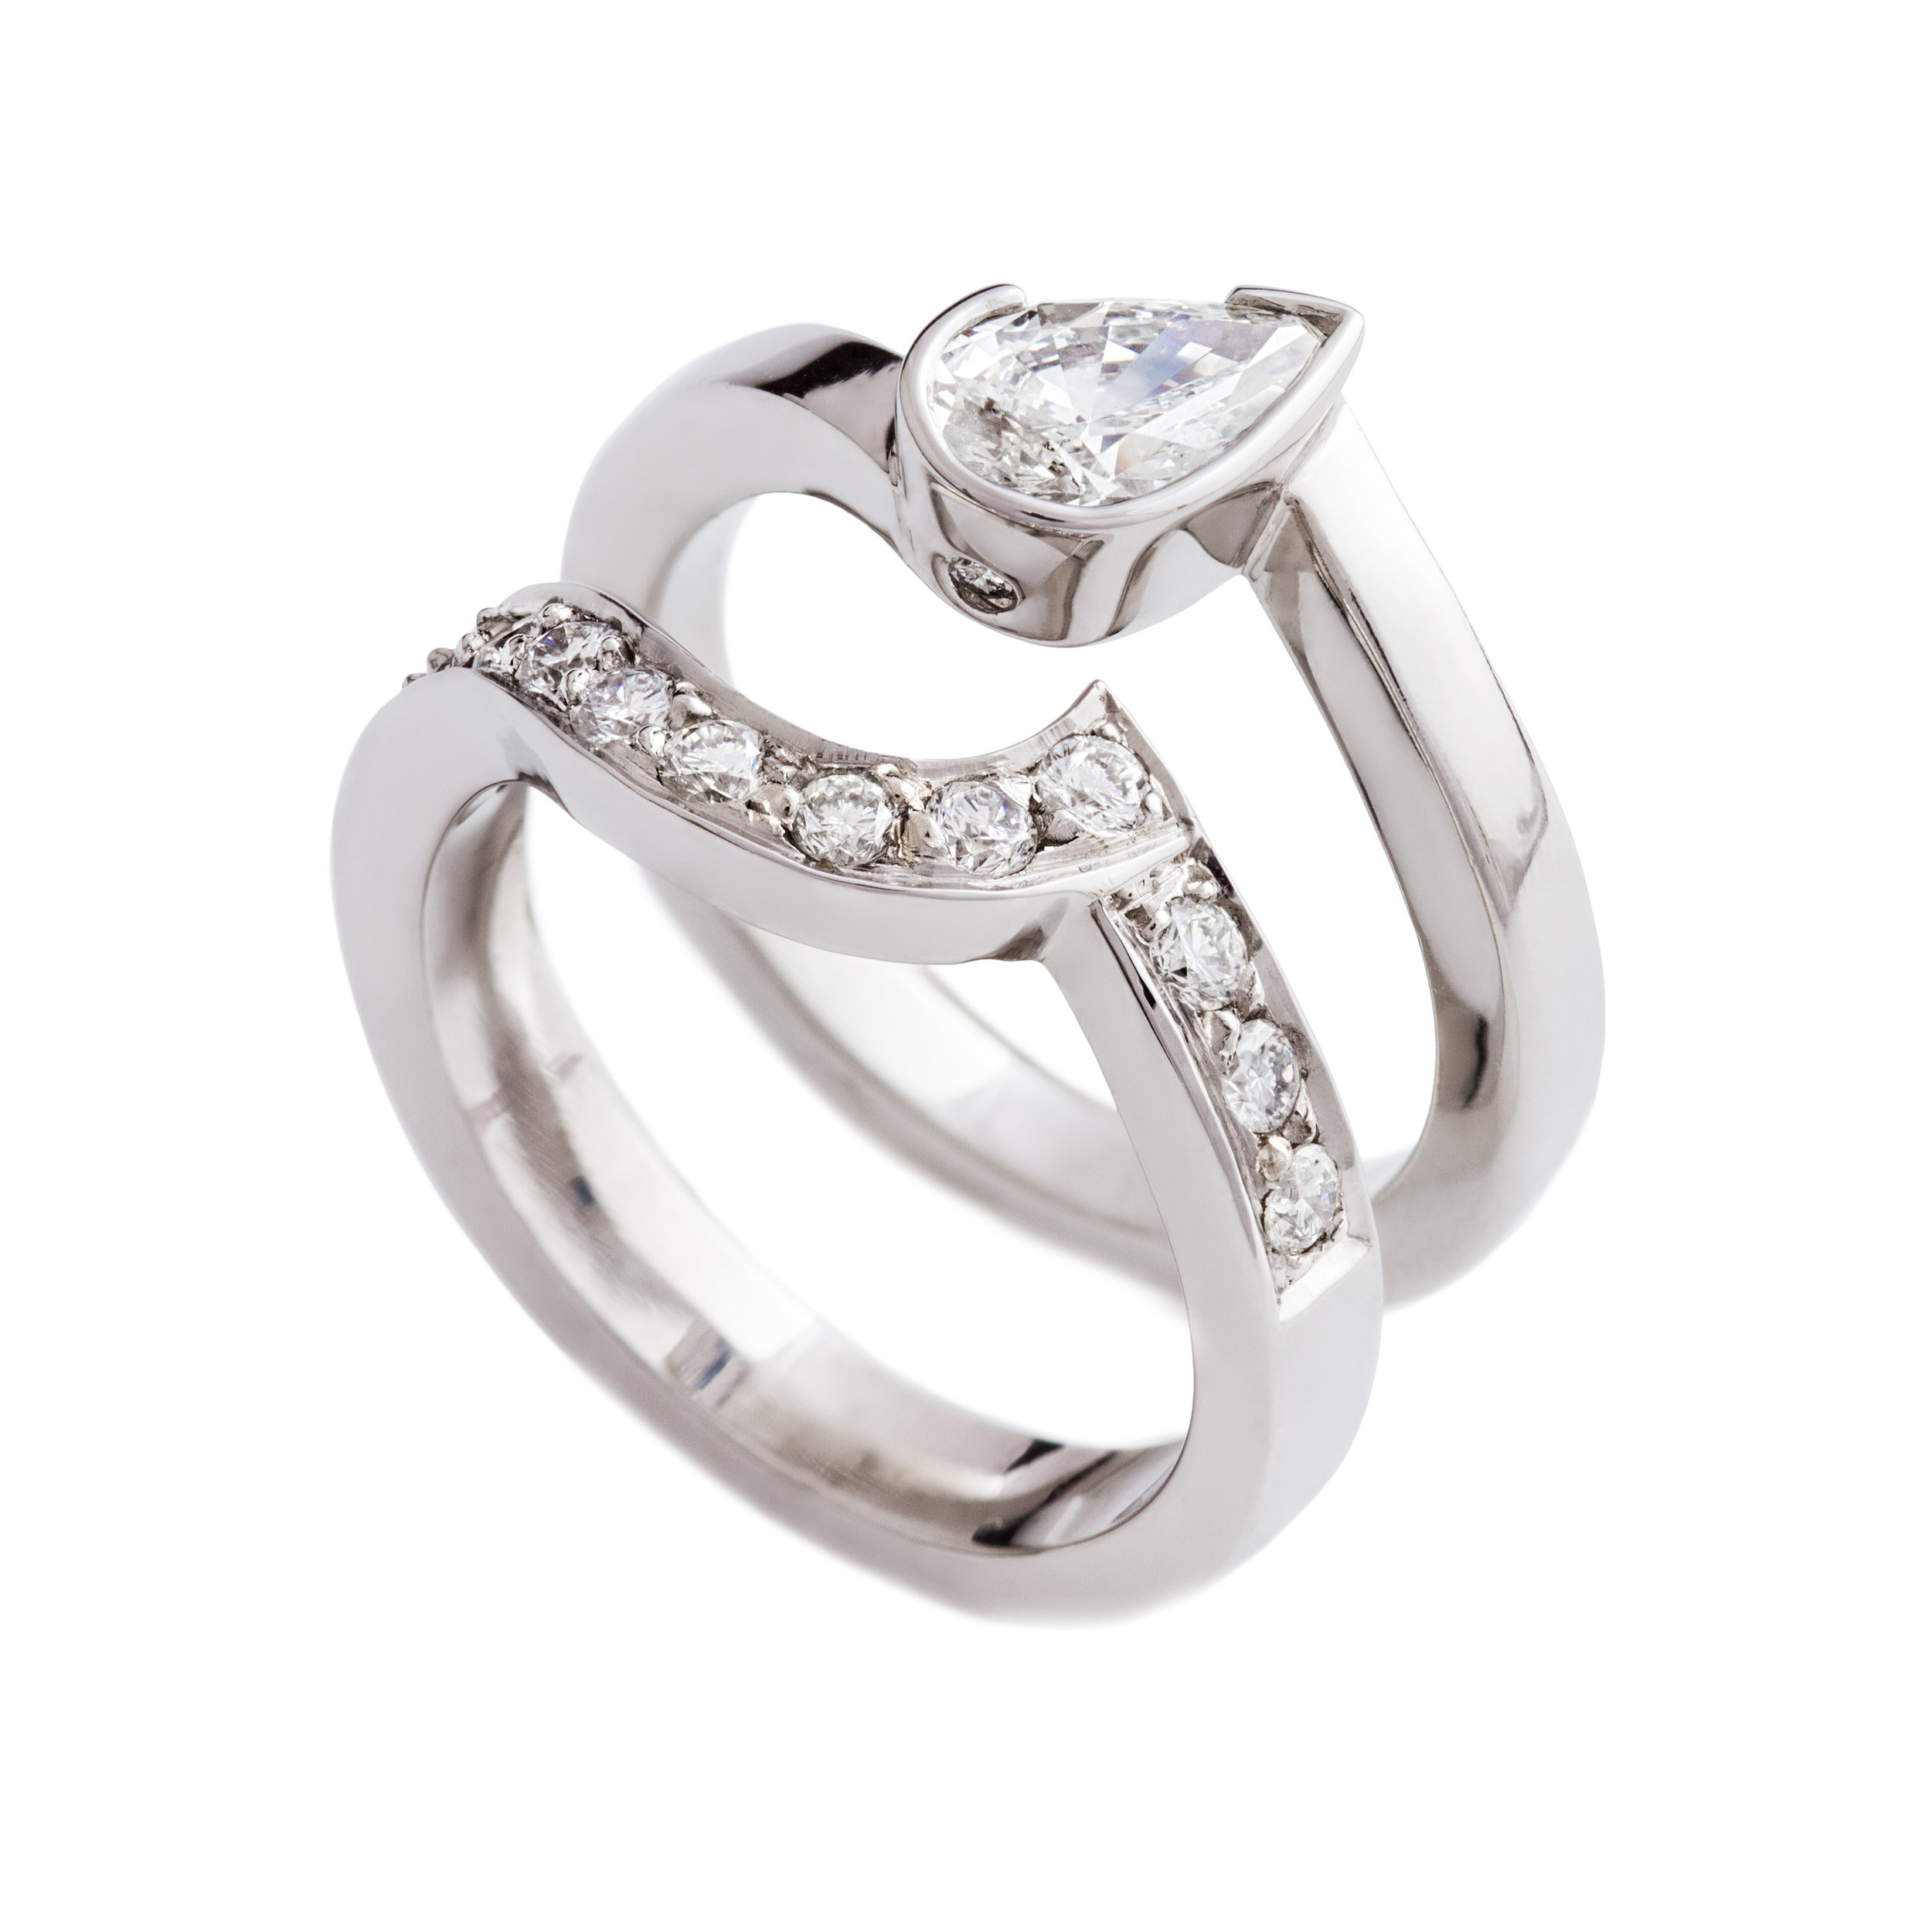 18ct white gold pear shaped diamond engagement ring with hidden diamond on setting - £5,454 18ct white gold fit-in wedding ring set with twelve diamonds - £2,258